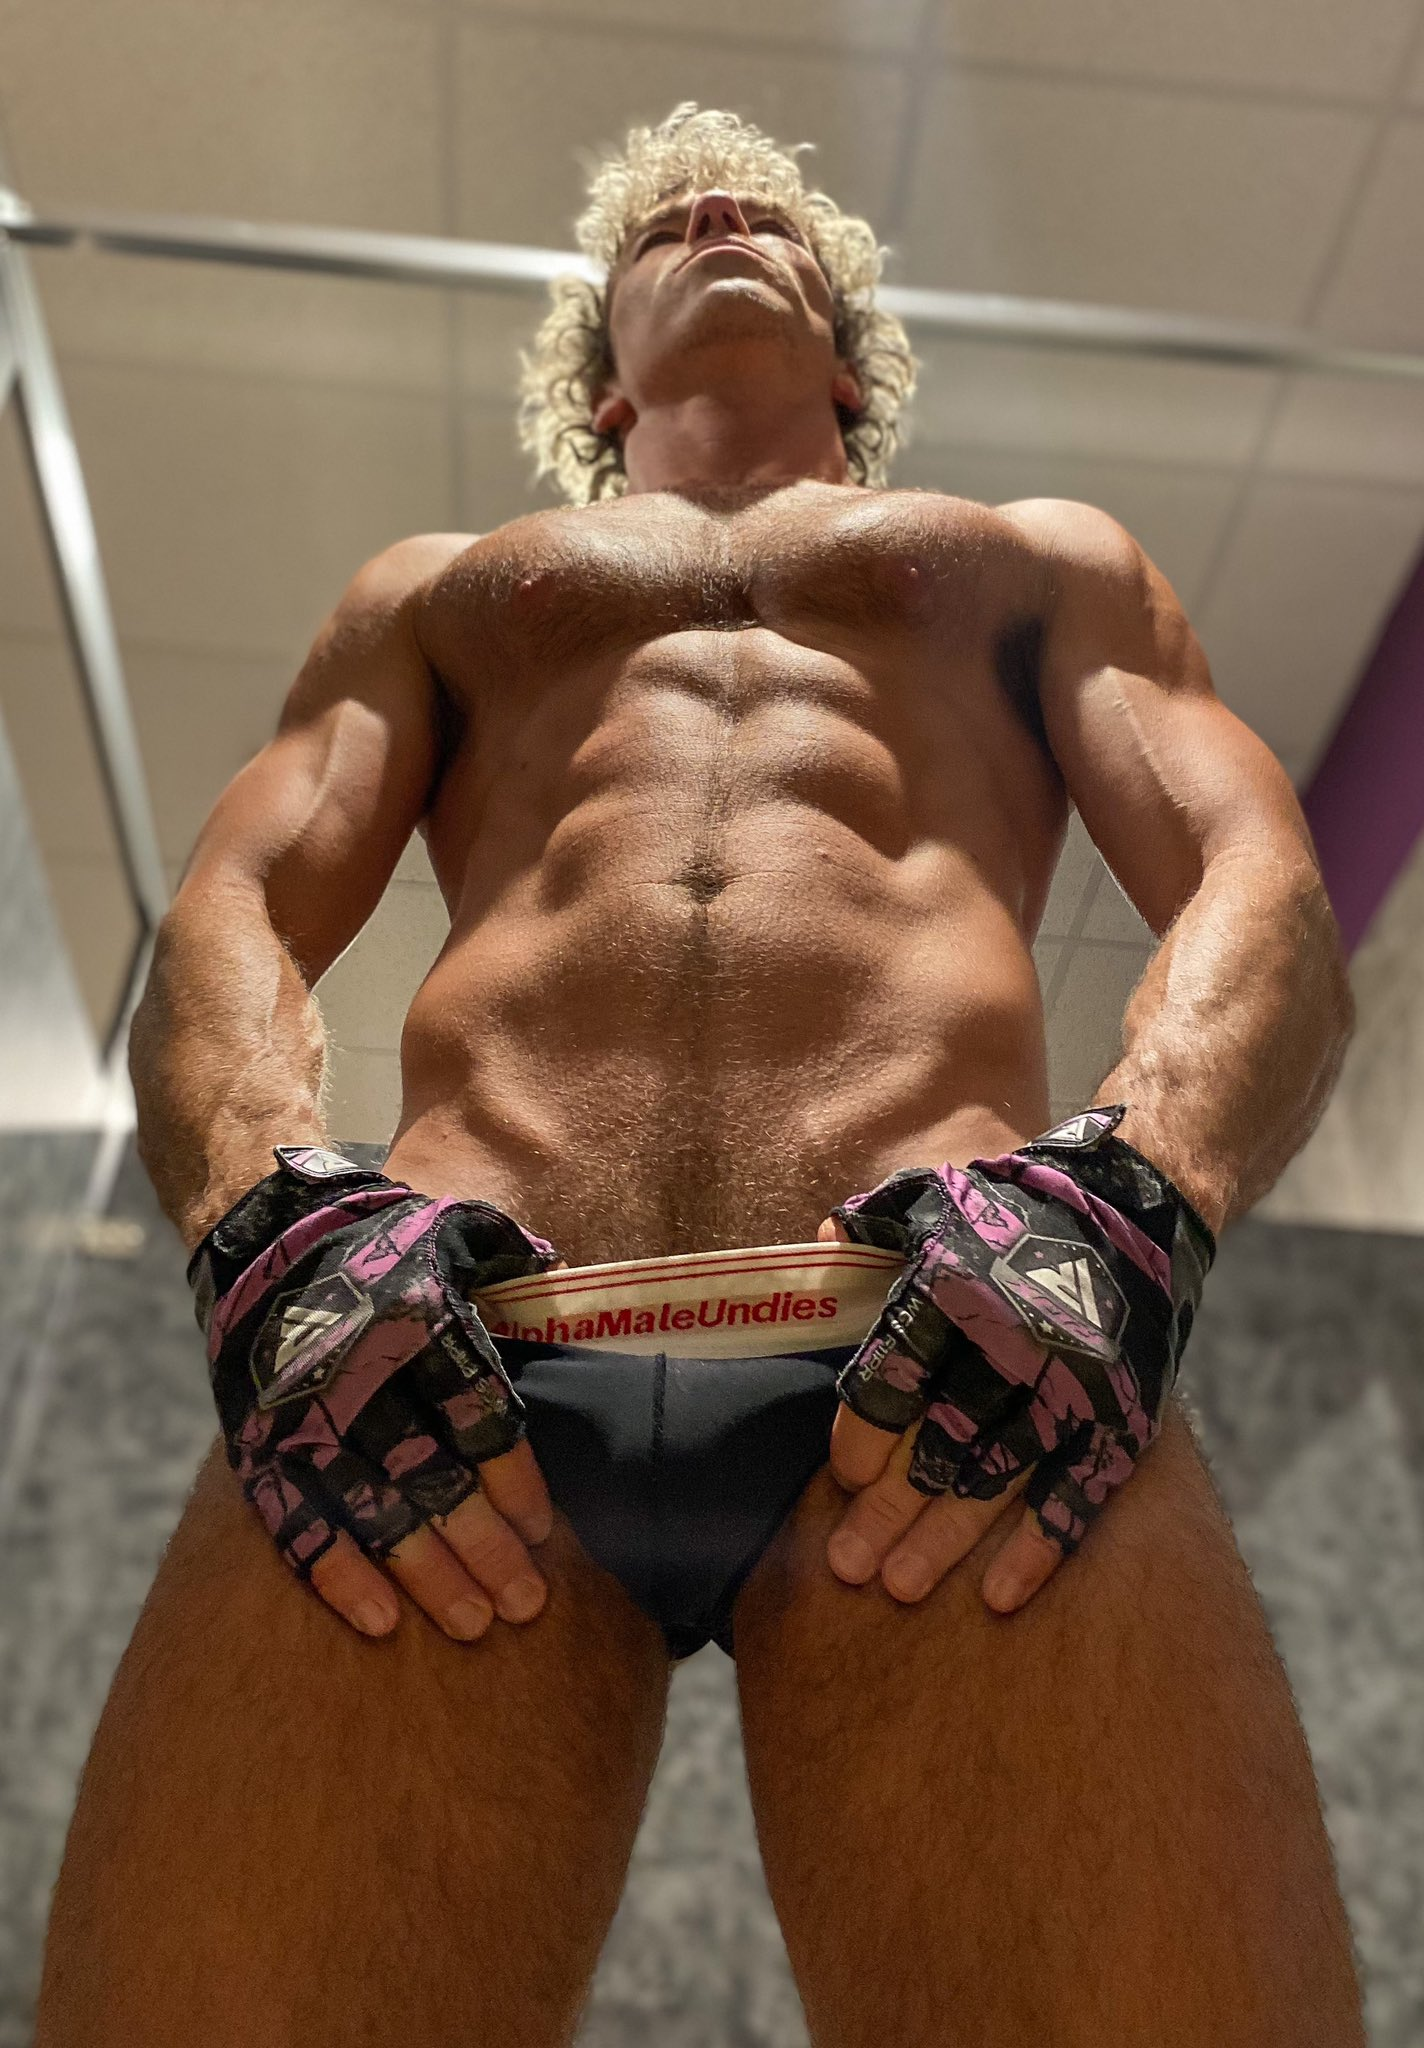 AMU Pure briefs and jocks on model DW Chase